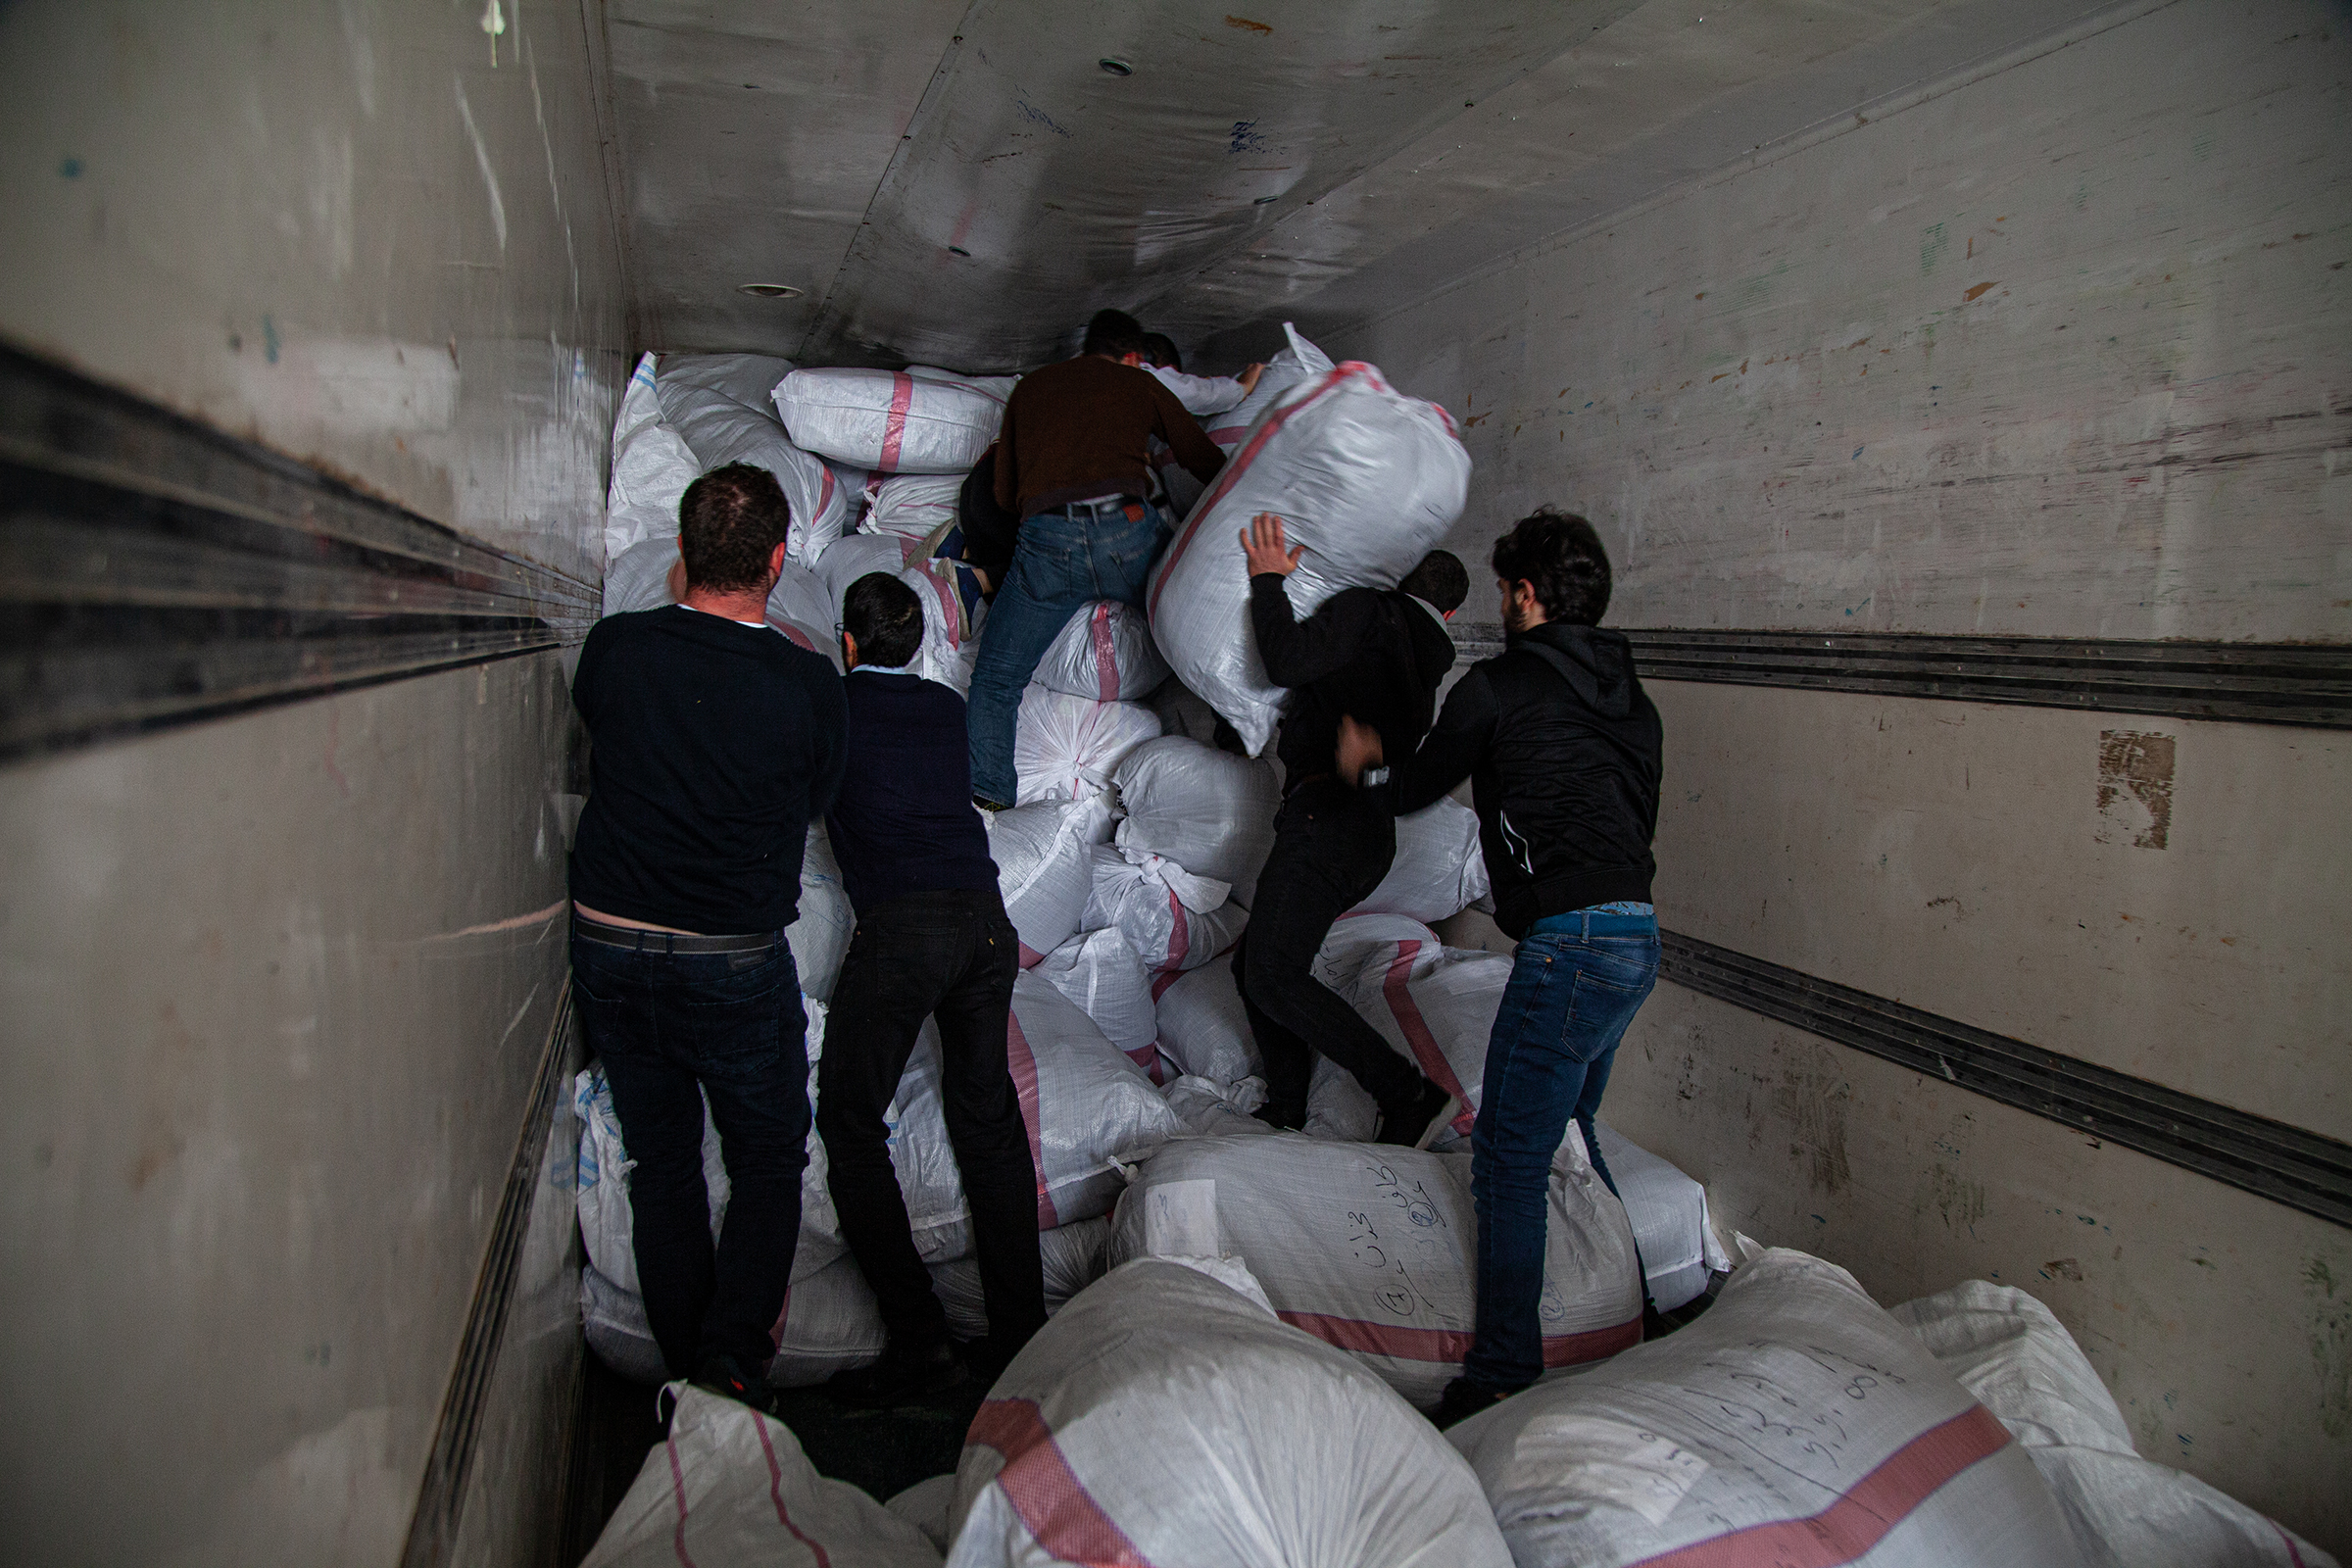 Men load sacks of humanitarian items into a truck in Gaziantep, Turkey, on Jan. 5, 2020. The aid was collected for newly displaced Syrians from Idlib.